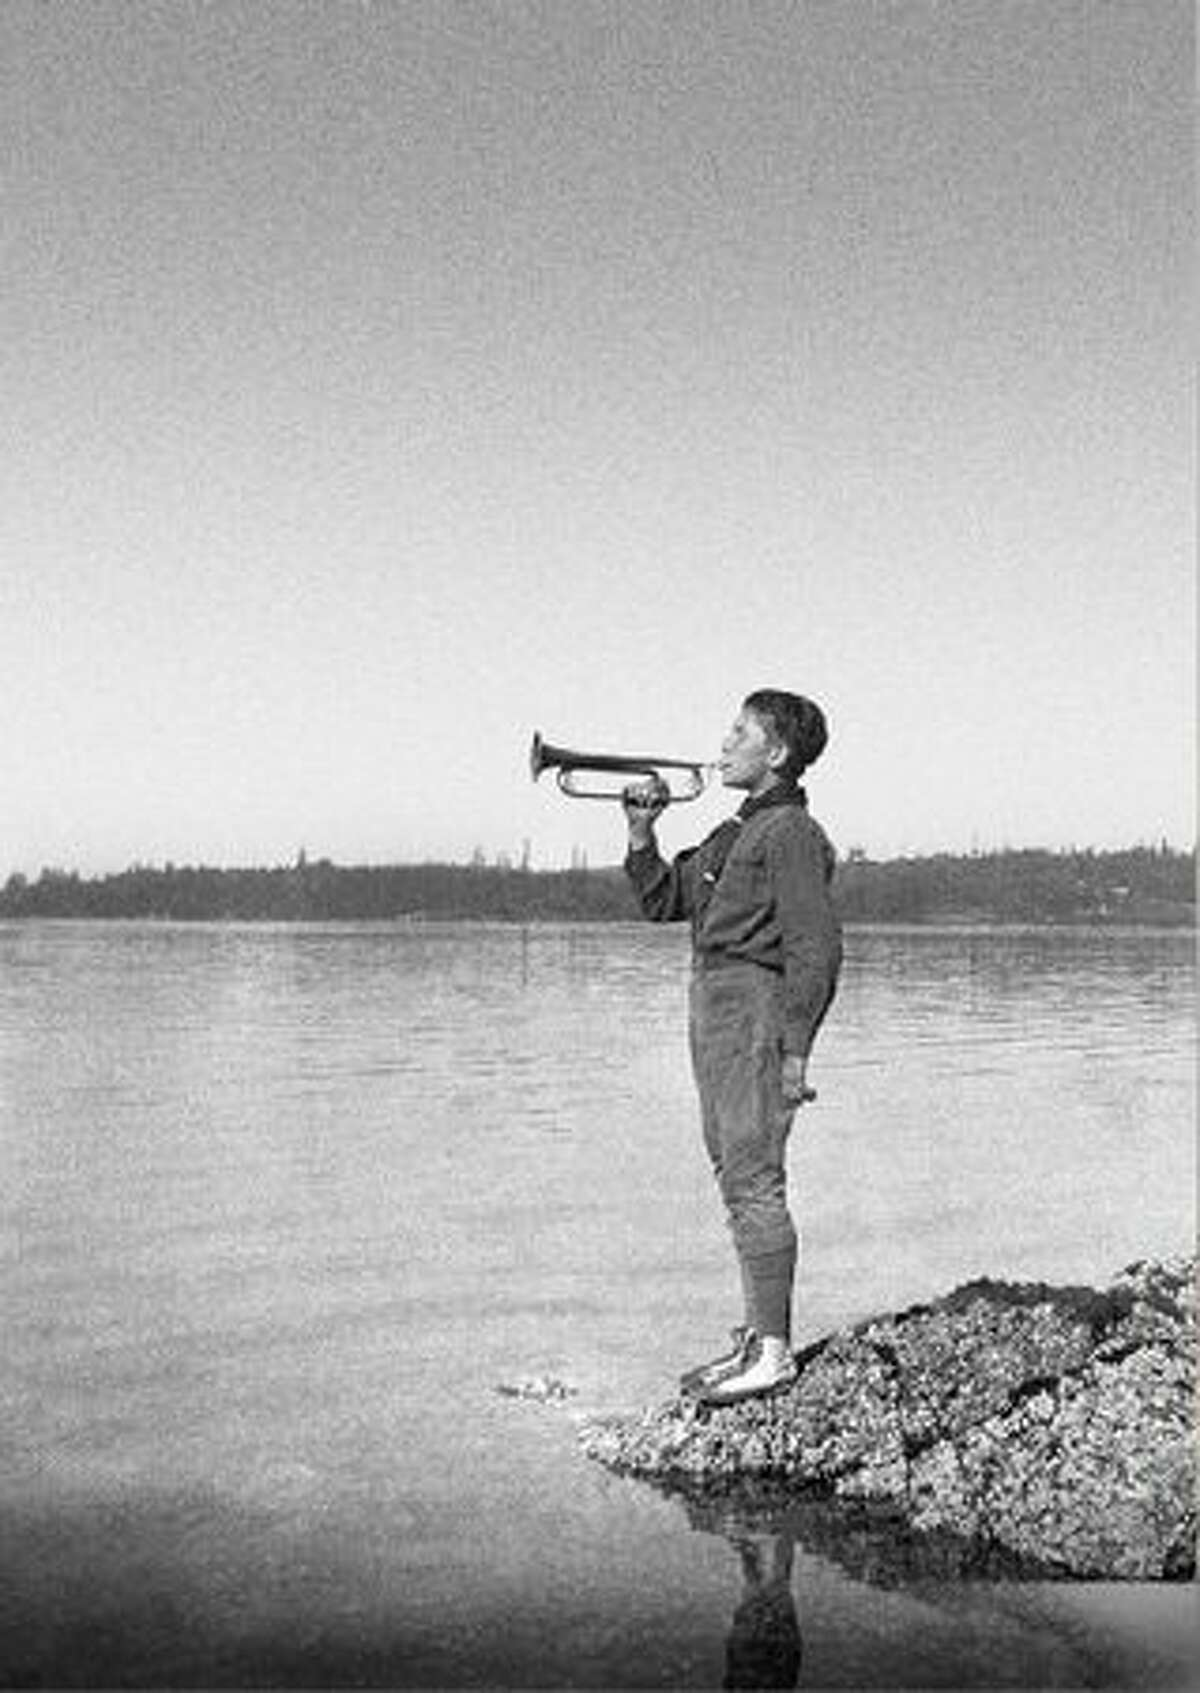 L. Ron Hubbard in 1924, with his bugle on Puget Sound in Bremerton, WA. (Author Services, Inc. - LRonHubbard.org)